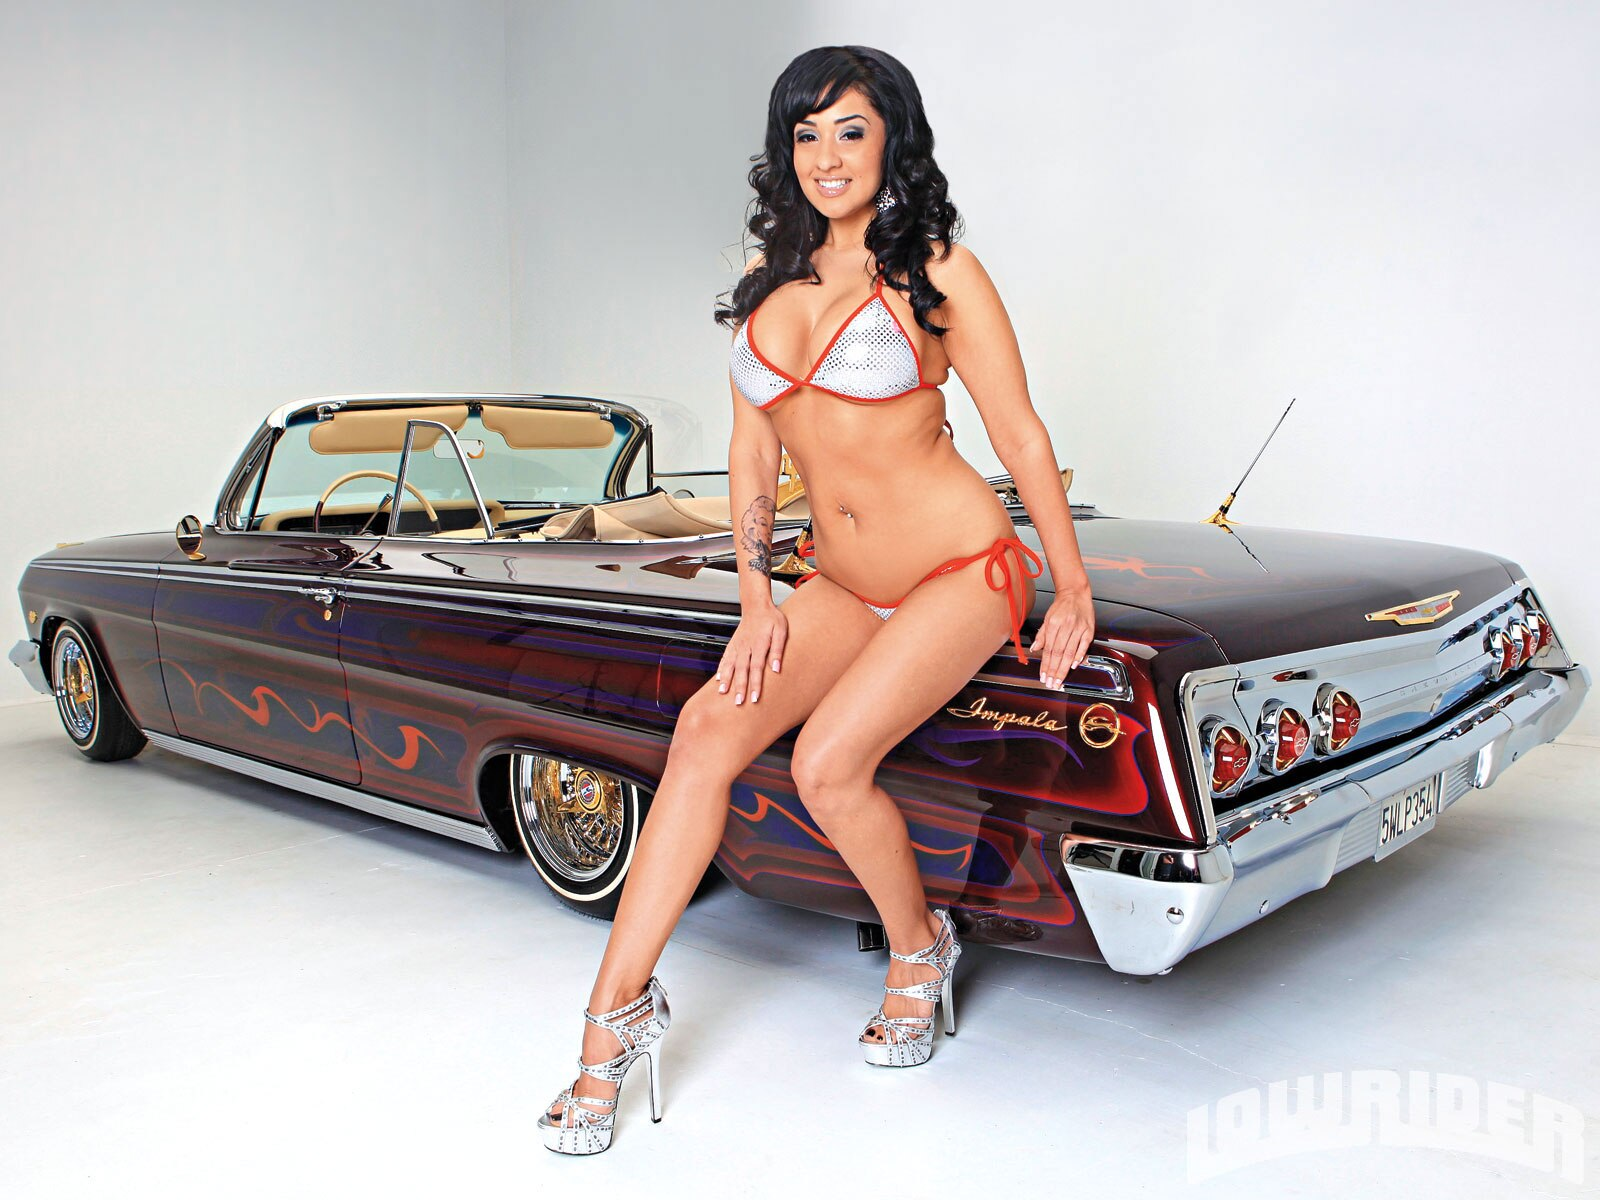 ralina lia lowrider girls model lowrider girls magazine. Black Bedroom Furniture Sets. Home Design Ideas